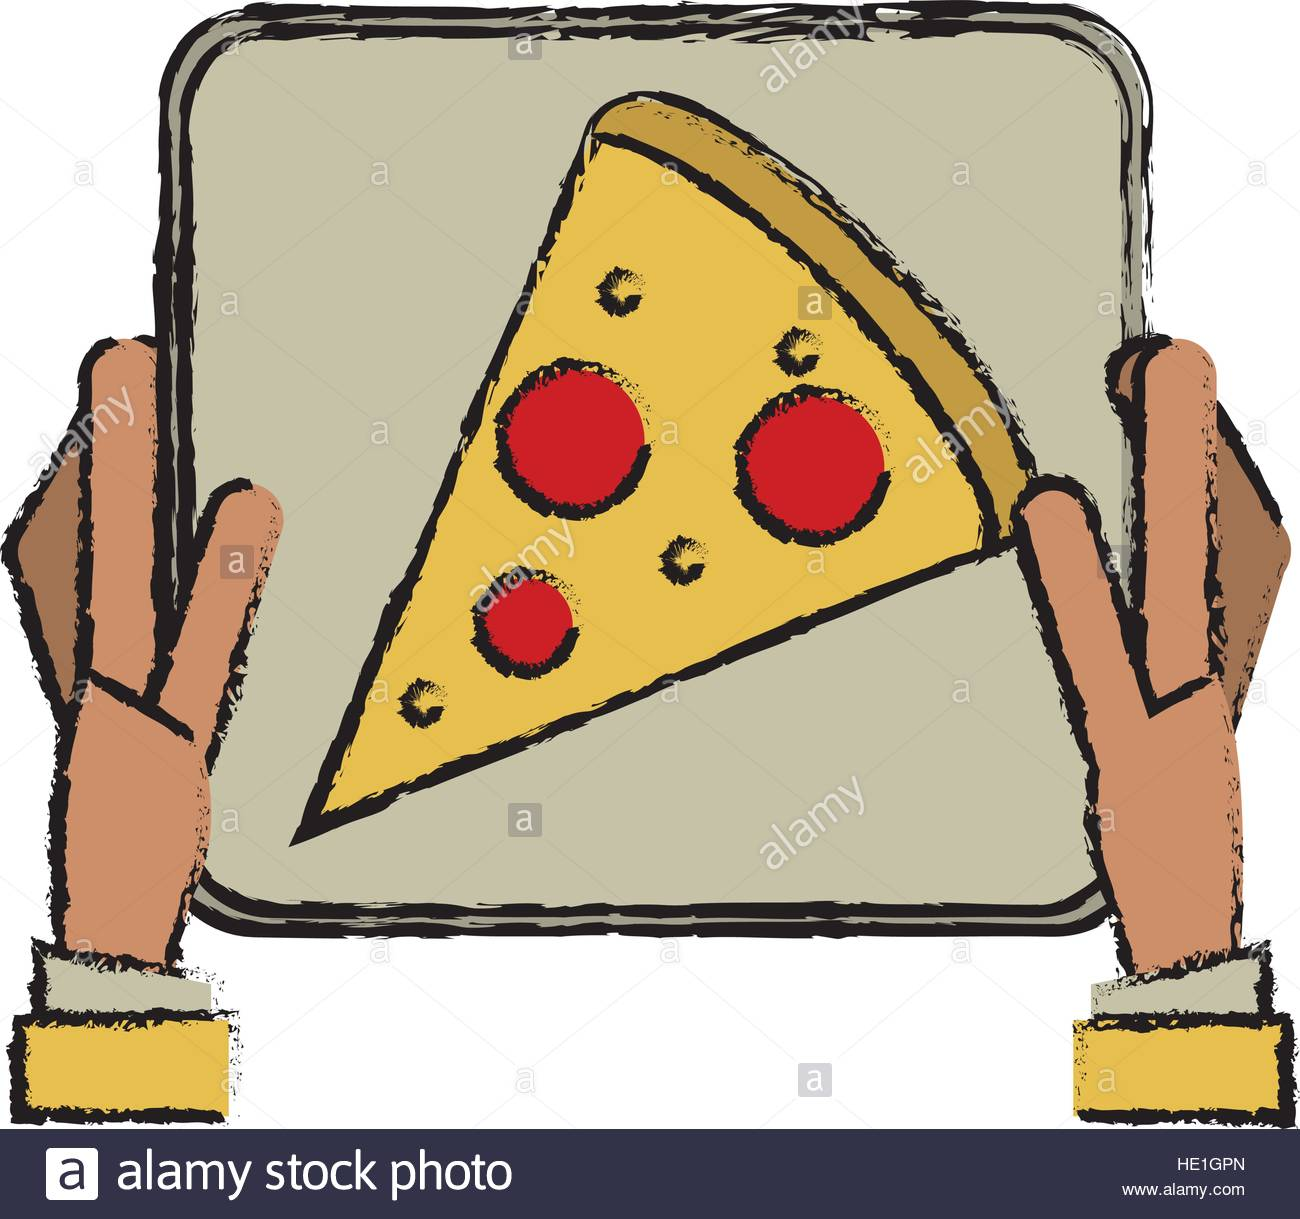 1300x1219 Hand Boy Delivery Box Pizza Drawing Stock Vector Art